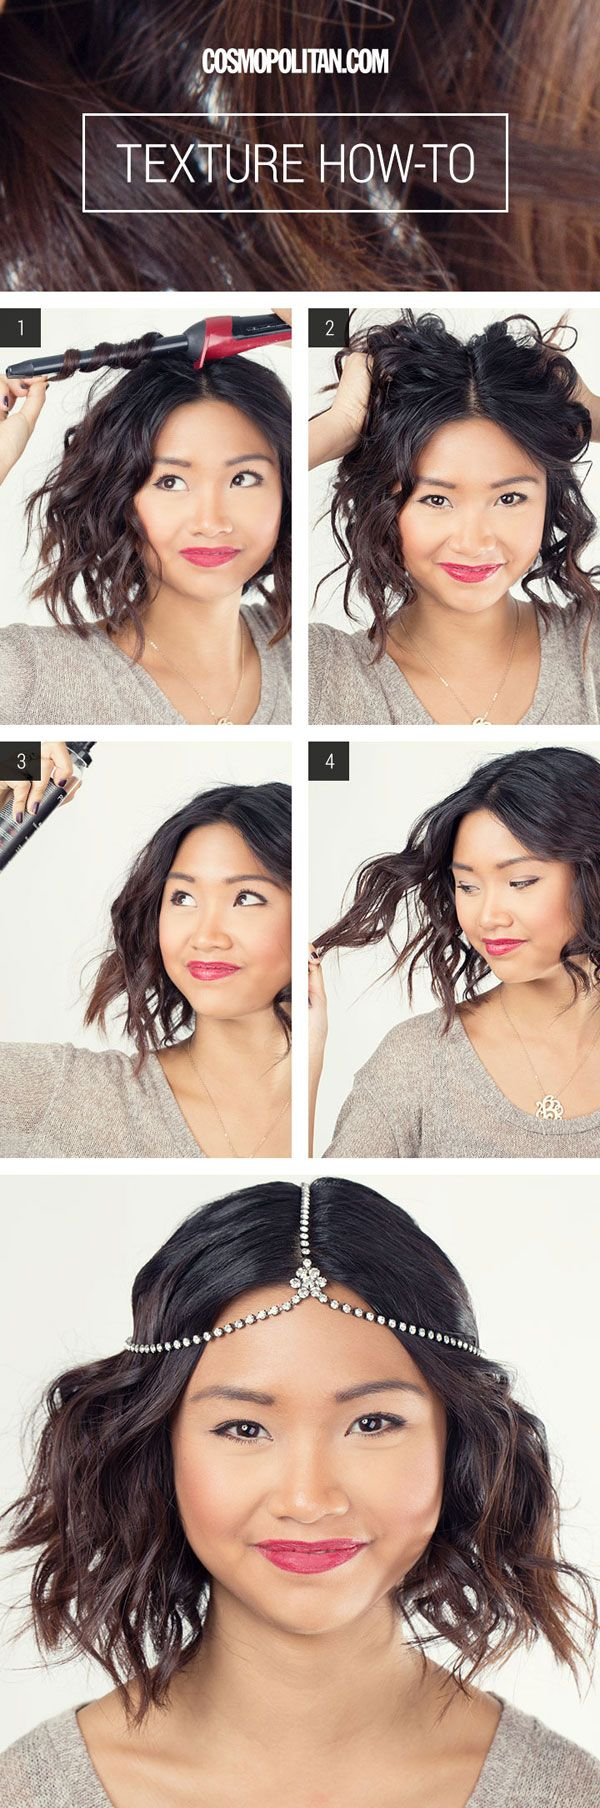 Hair How-To: Perfect Tousled Waves For Shorter Hair! OMG! Perfect for me :D I wonder if you can do these with heatless curlers?